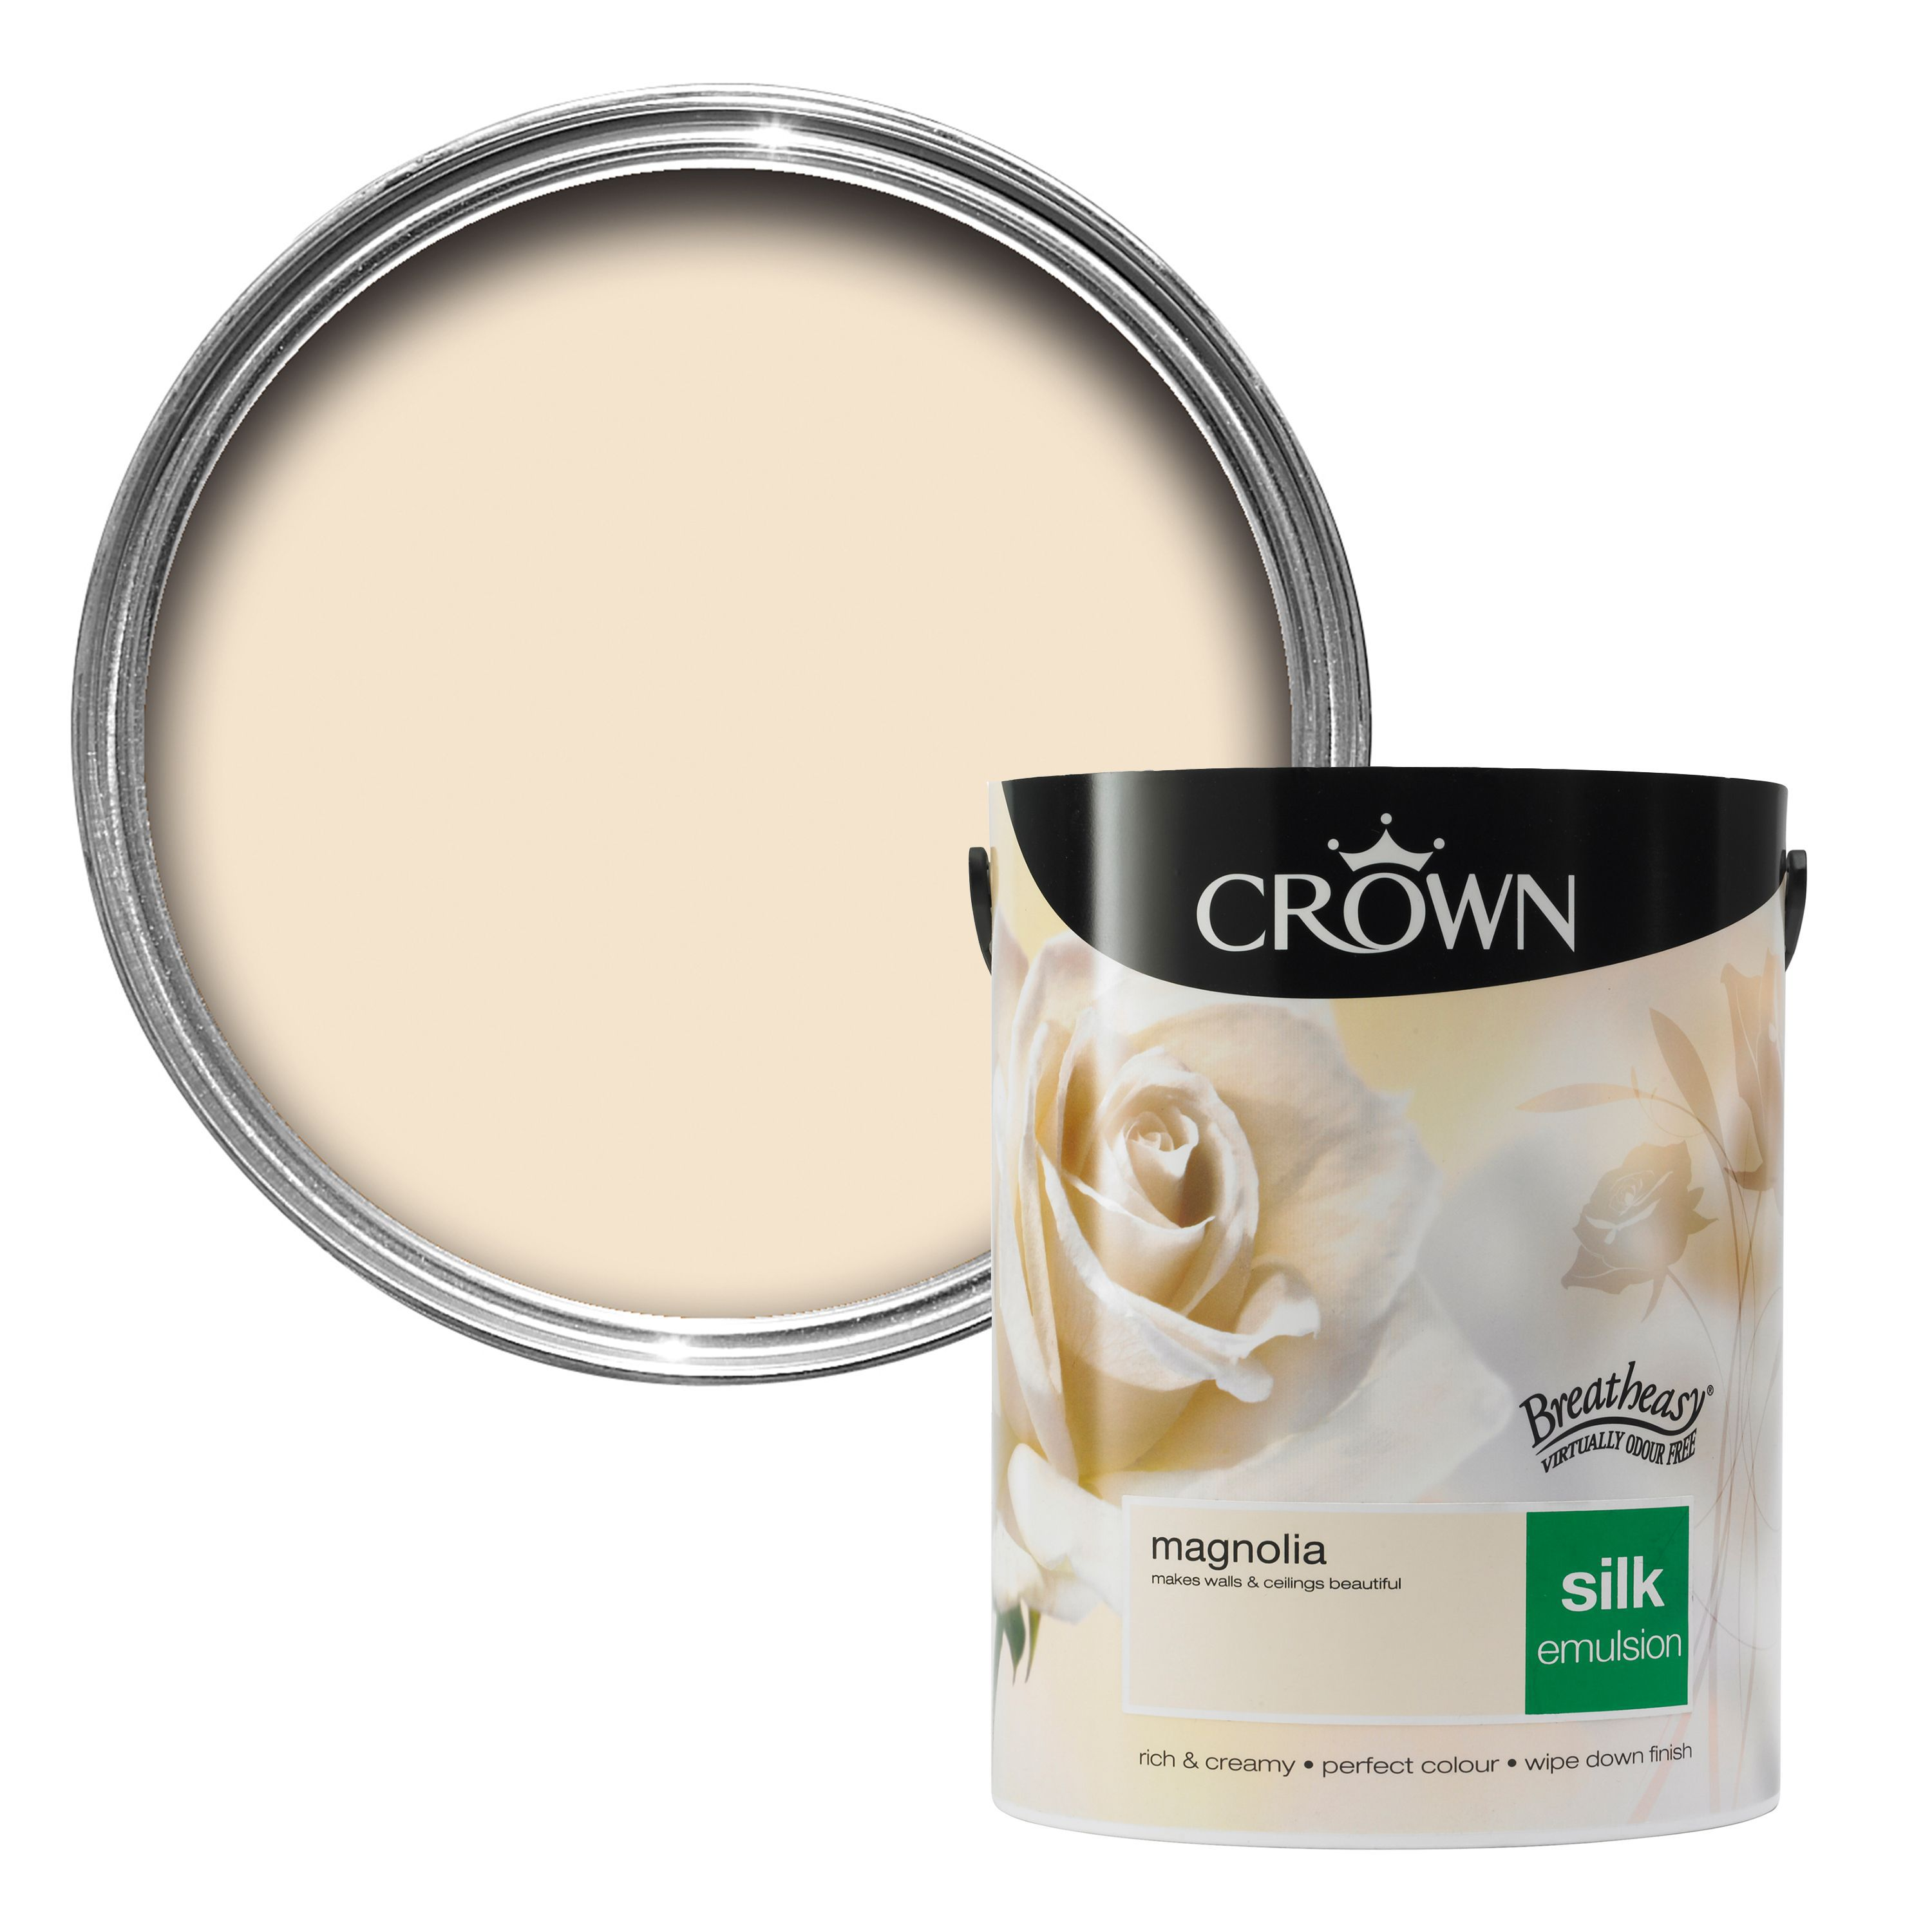 Crown Breatheasy Magnolia Silk Emulsion Paint 5l